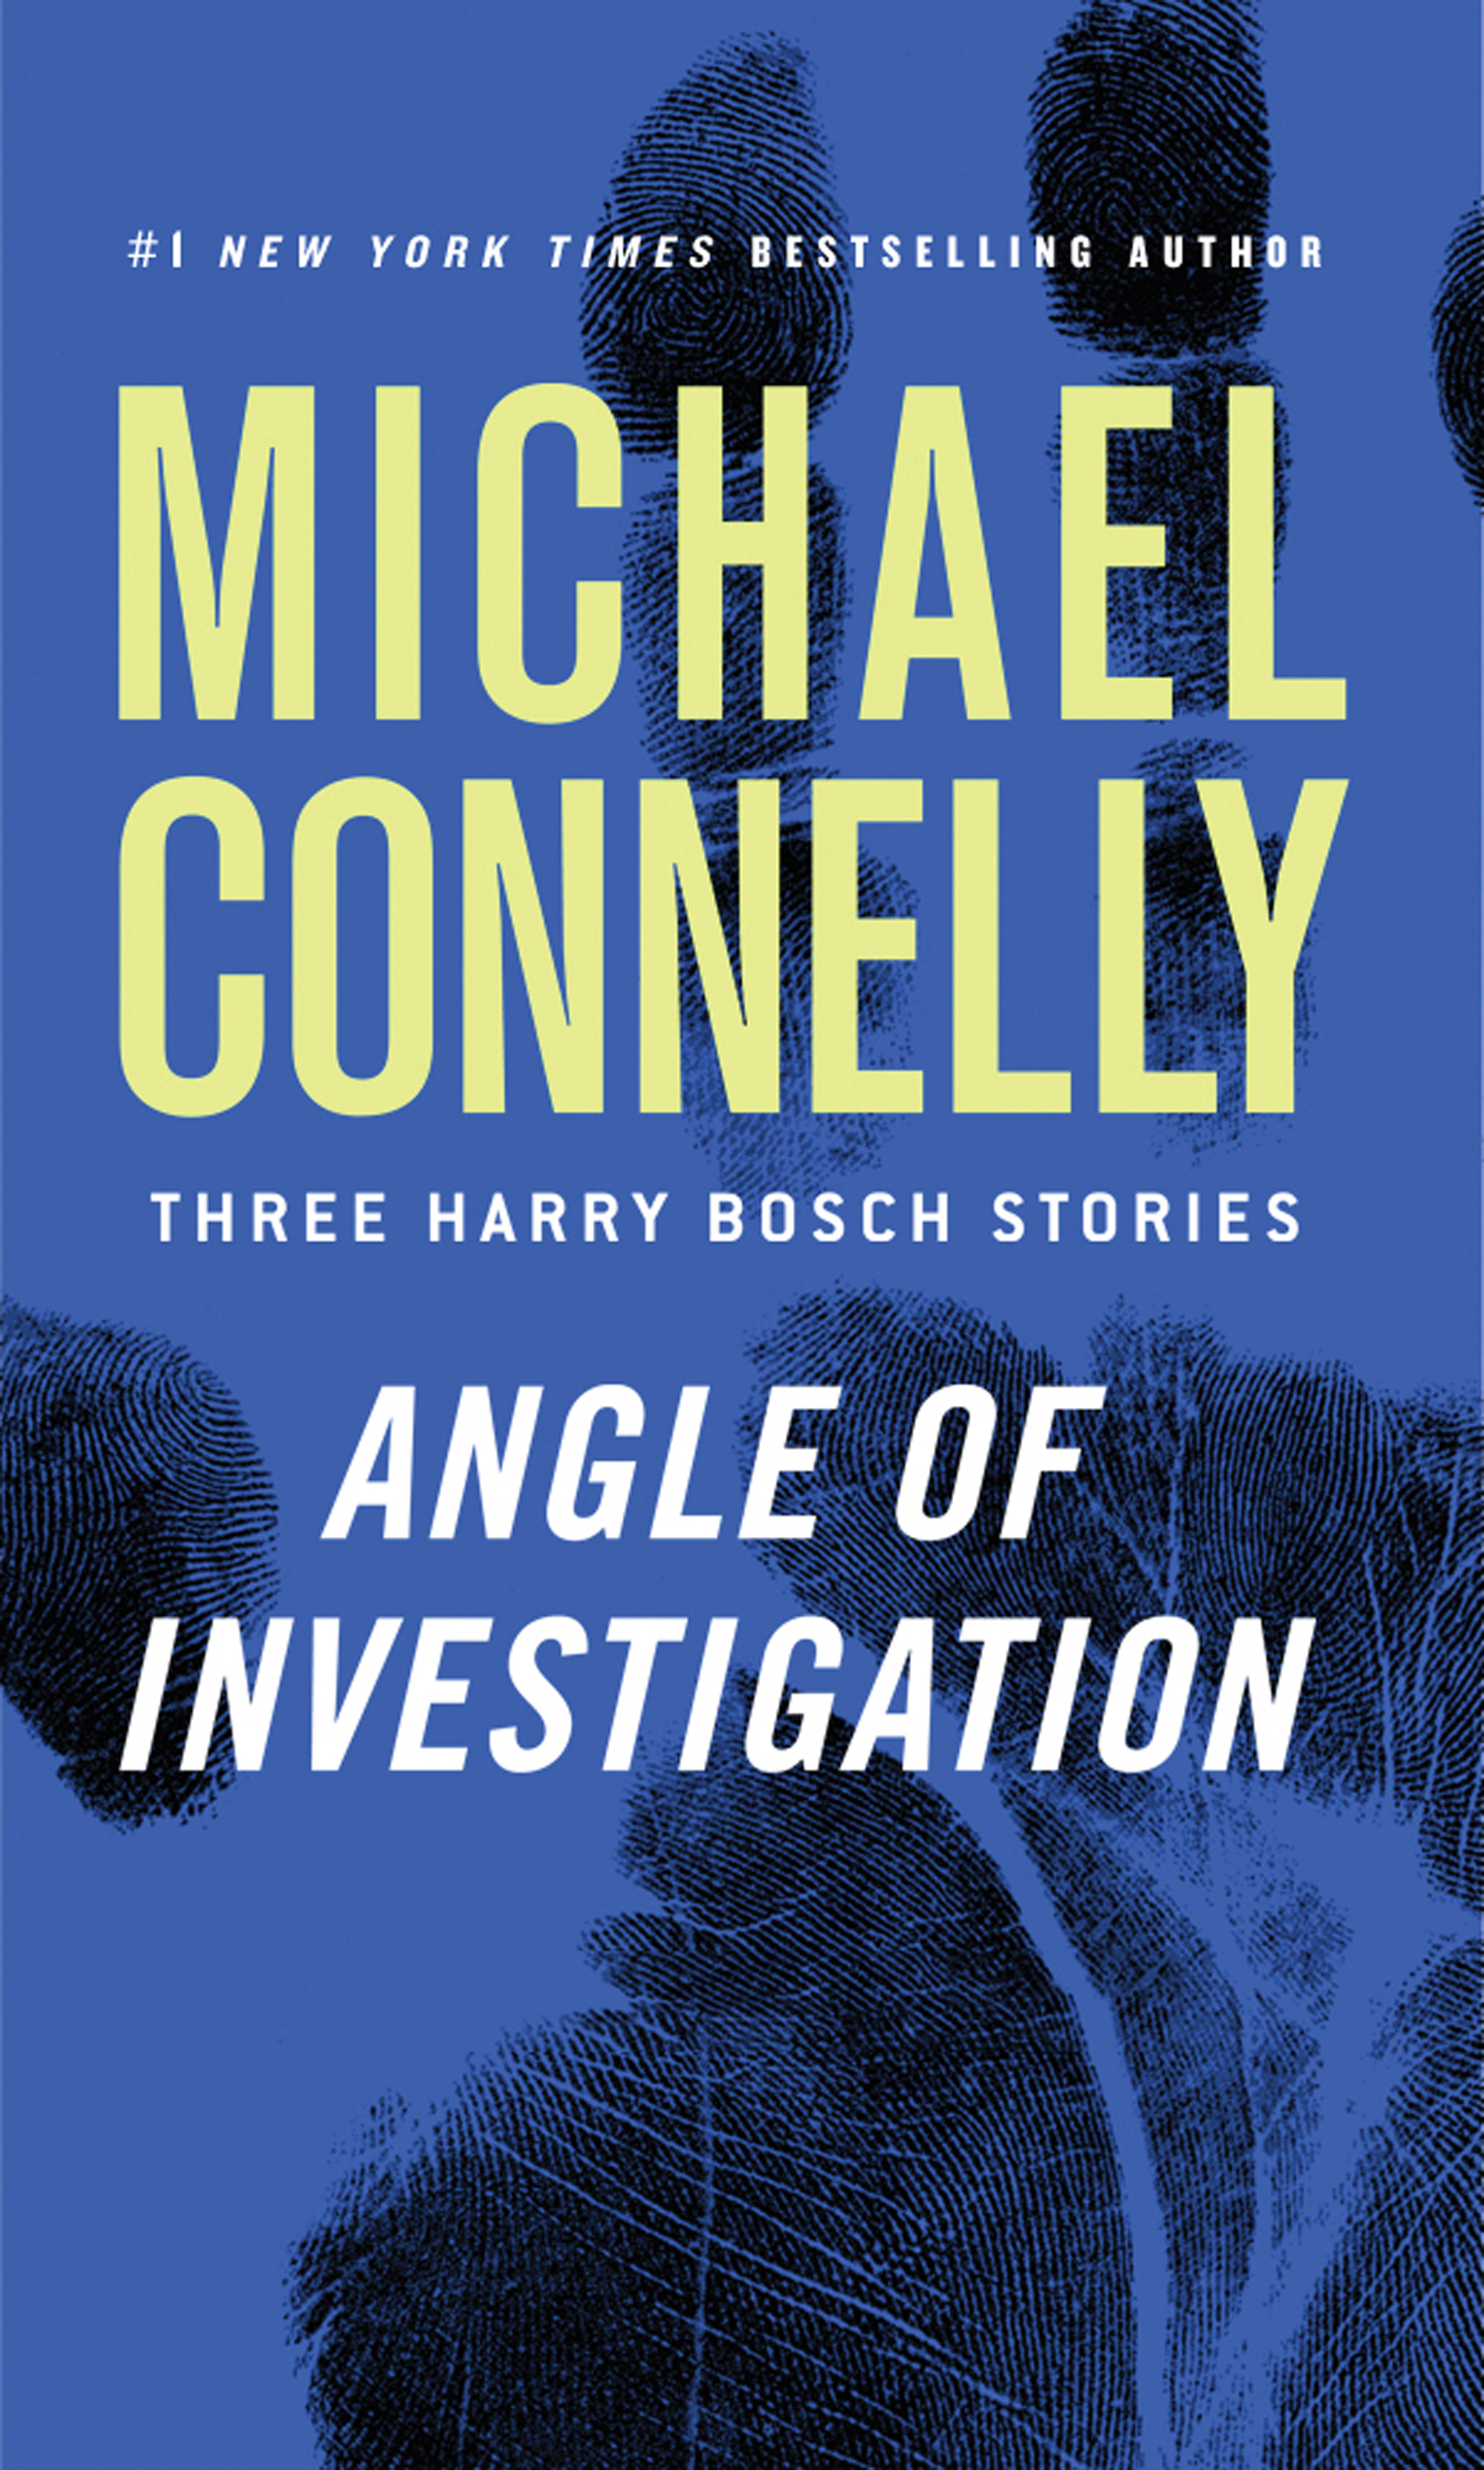 Angle of investigation Three Harry Bosch Stories